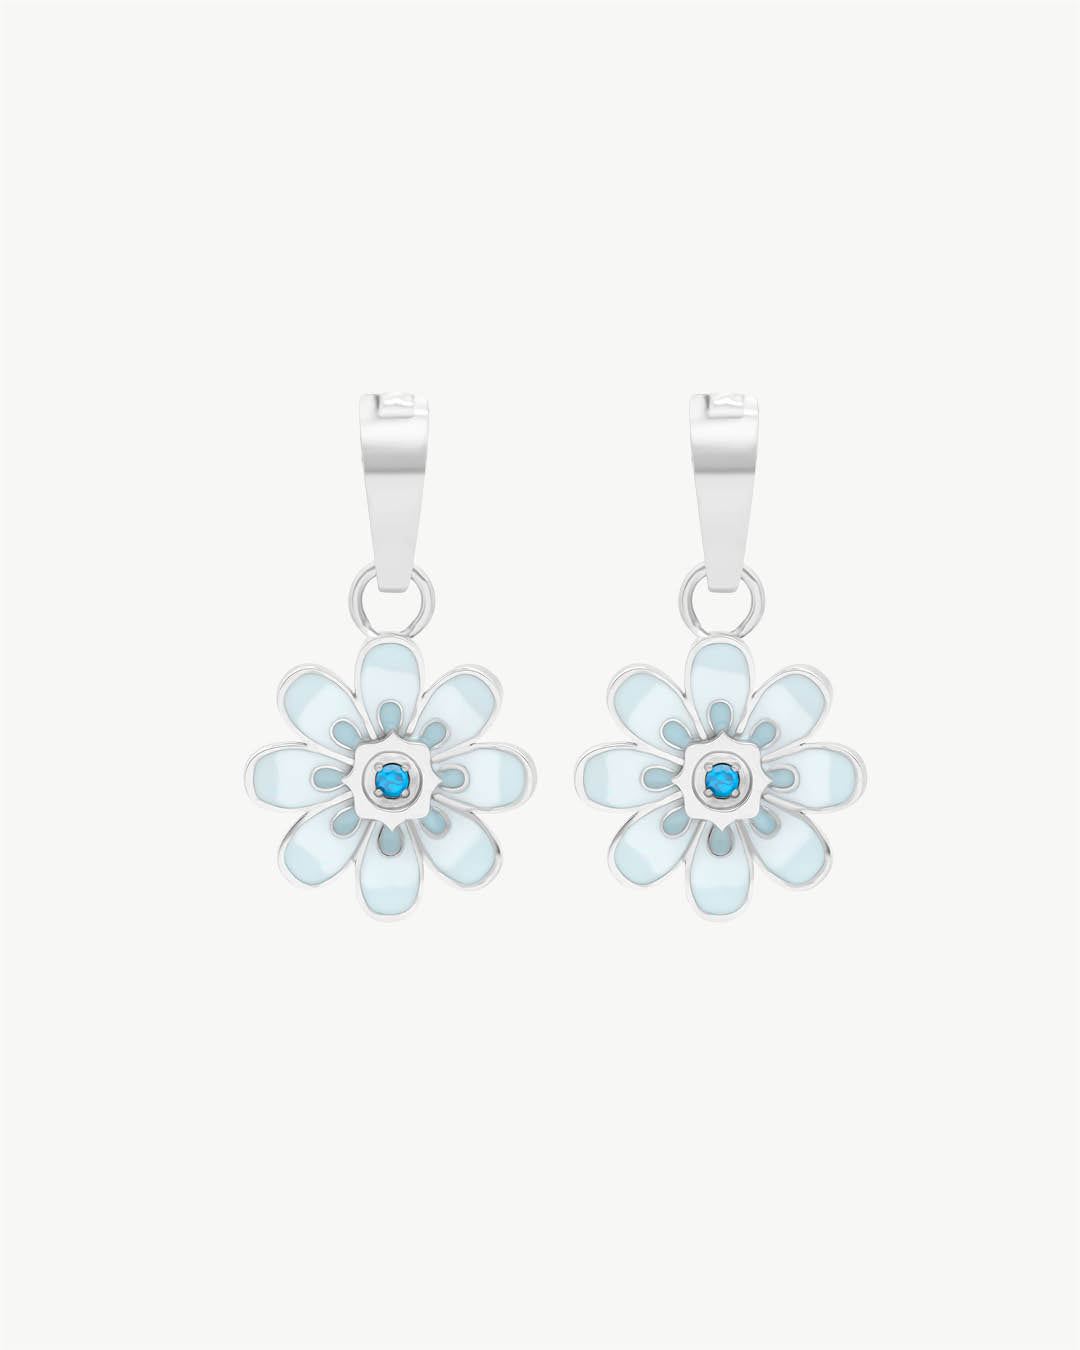 Pendentifs Oopsy Daisy Blue, Argent